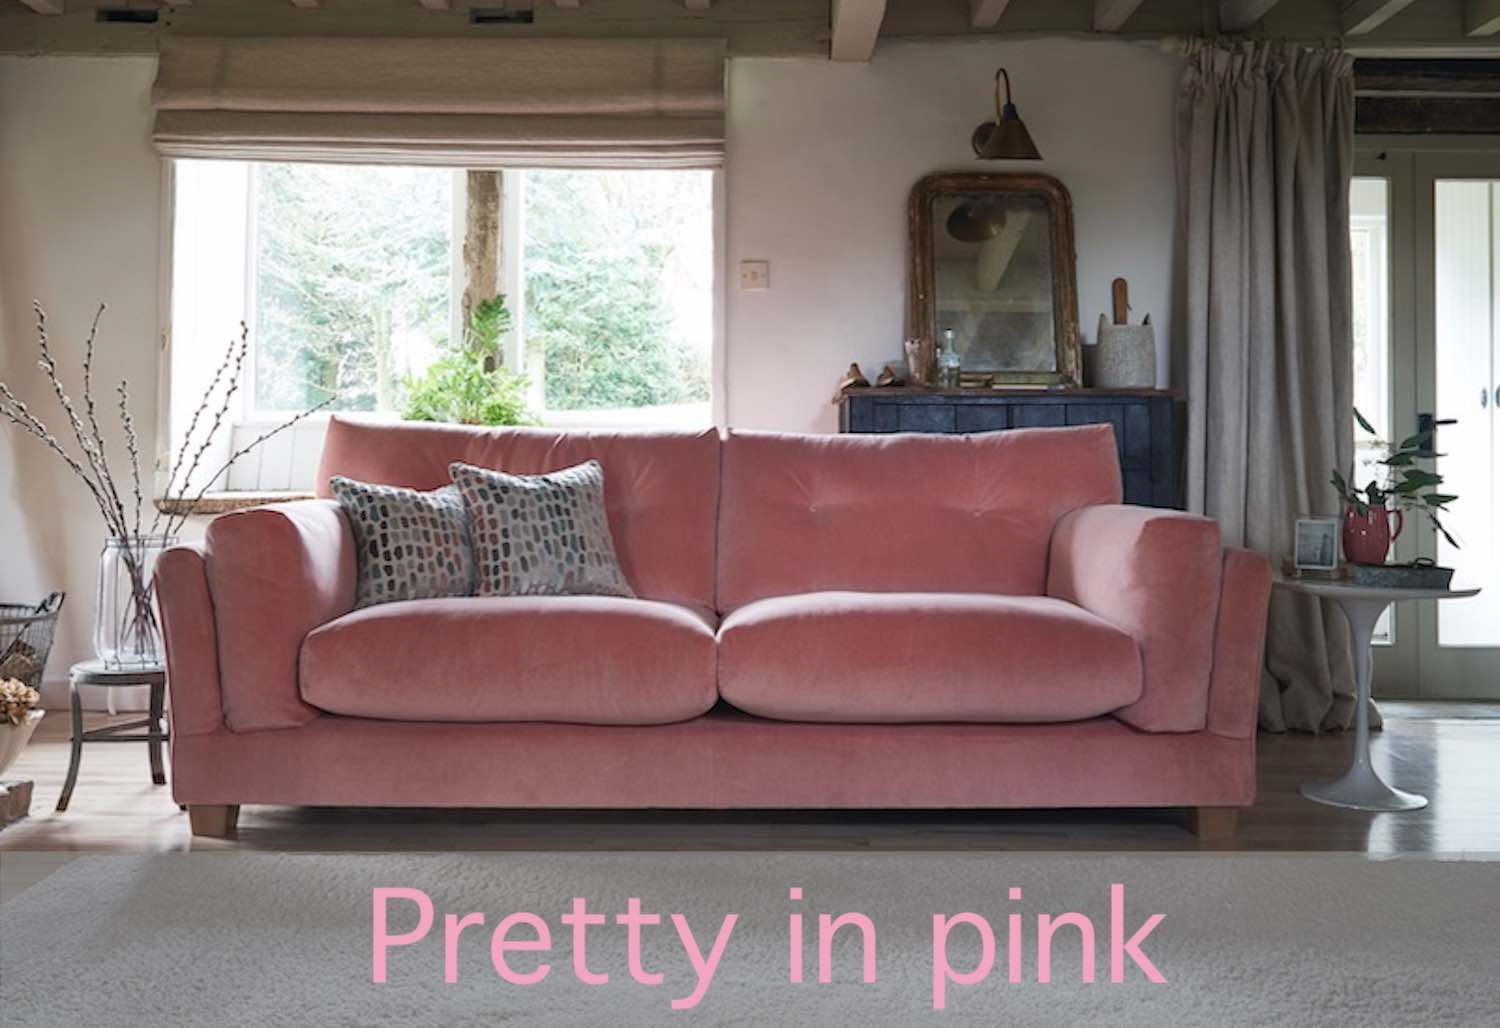 Magnificent Choose A Pink Sofa For Summer 2019 Furniture Shop Devon Interior Design Ideas Gentotthenellocom